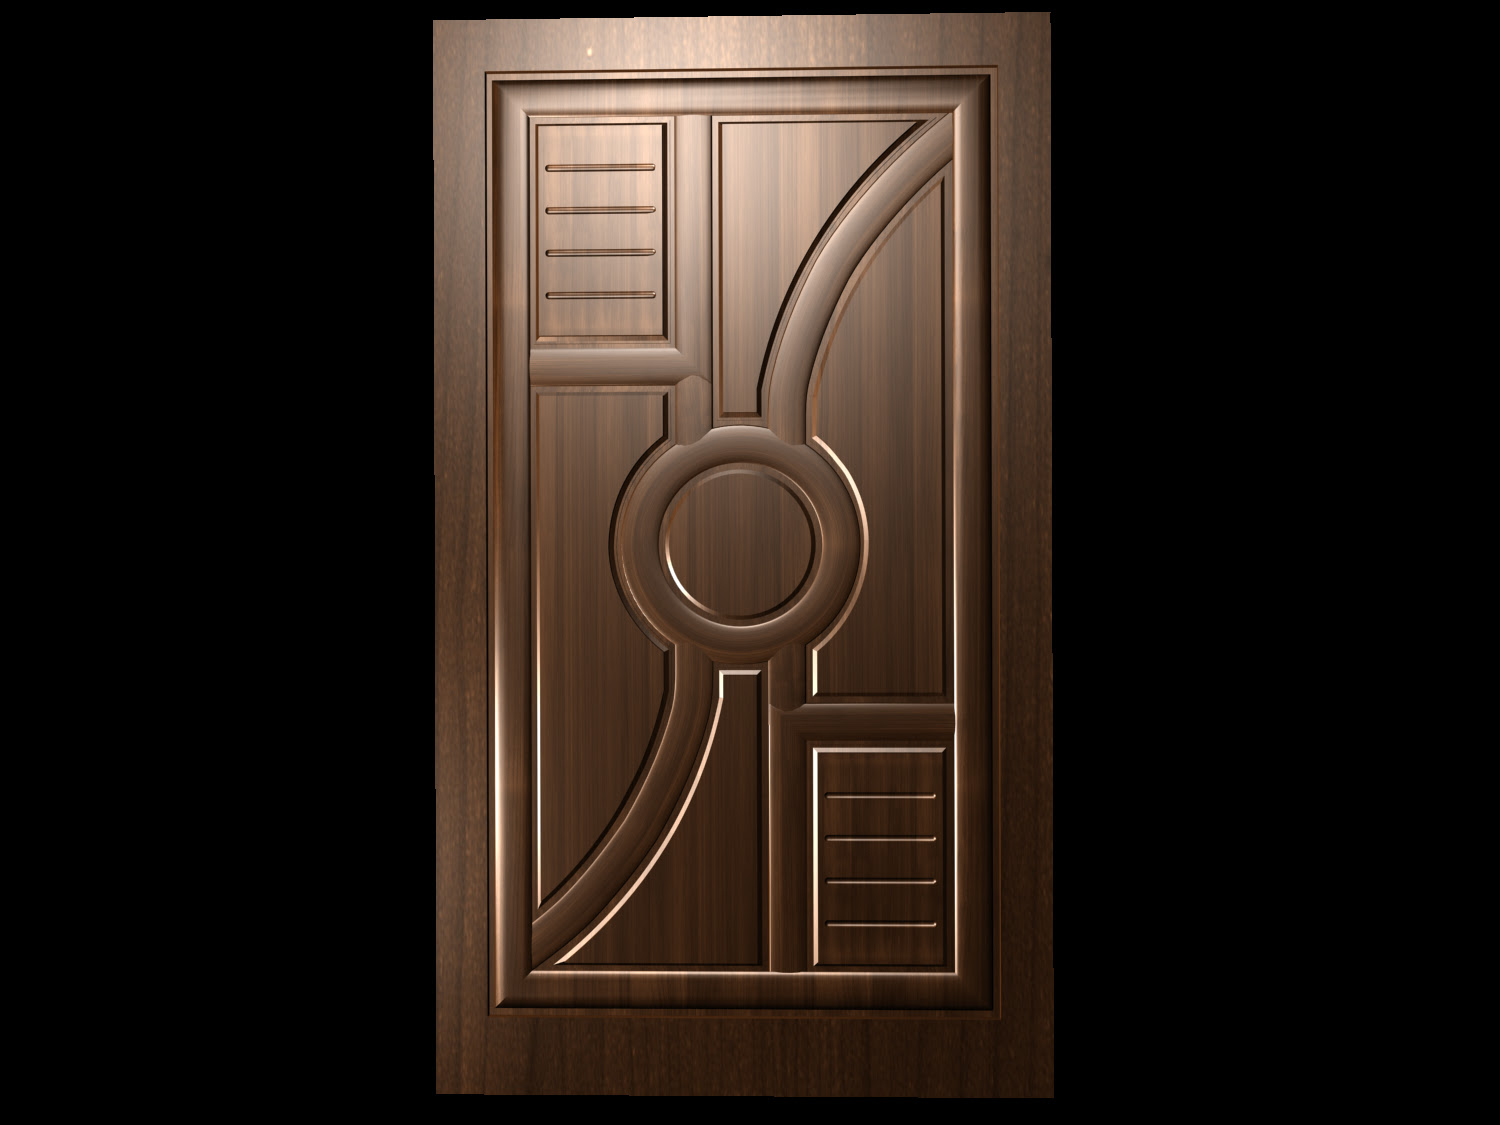 I Want Idea About Main Door Which Is Teak Wood But Simple Design To